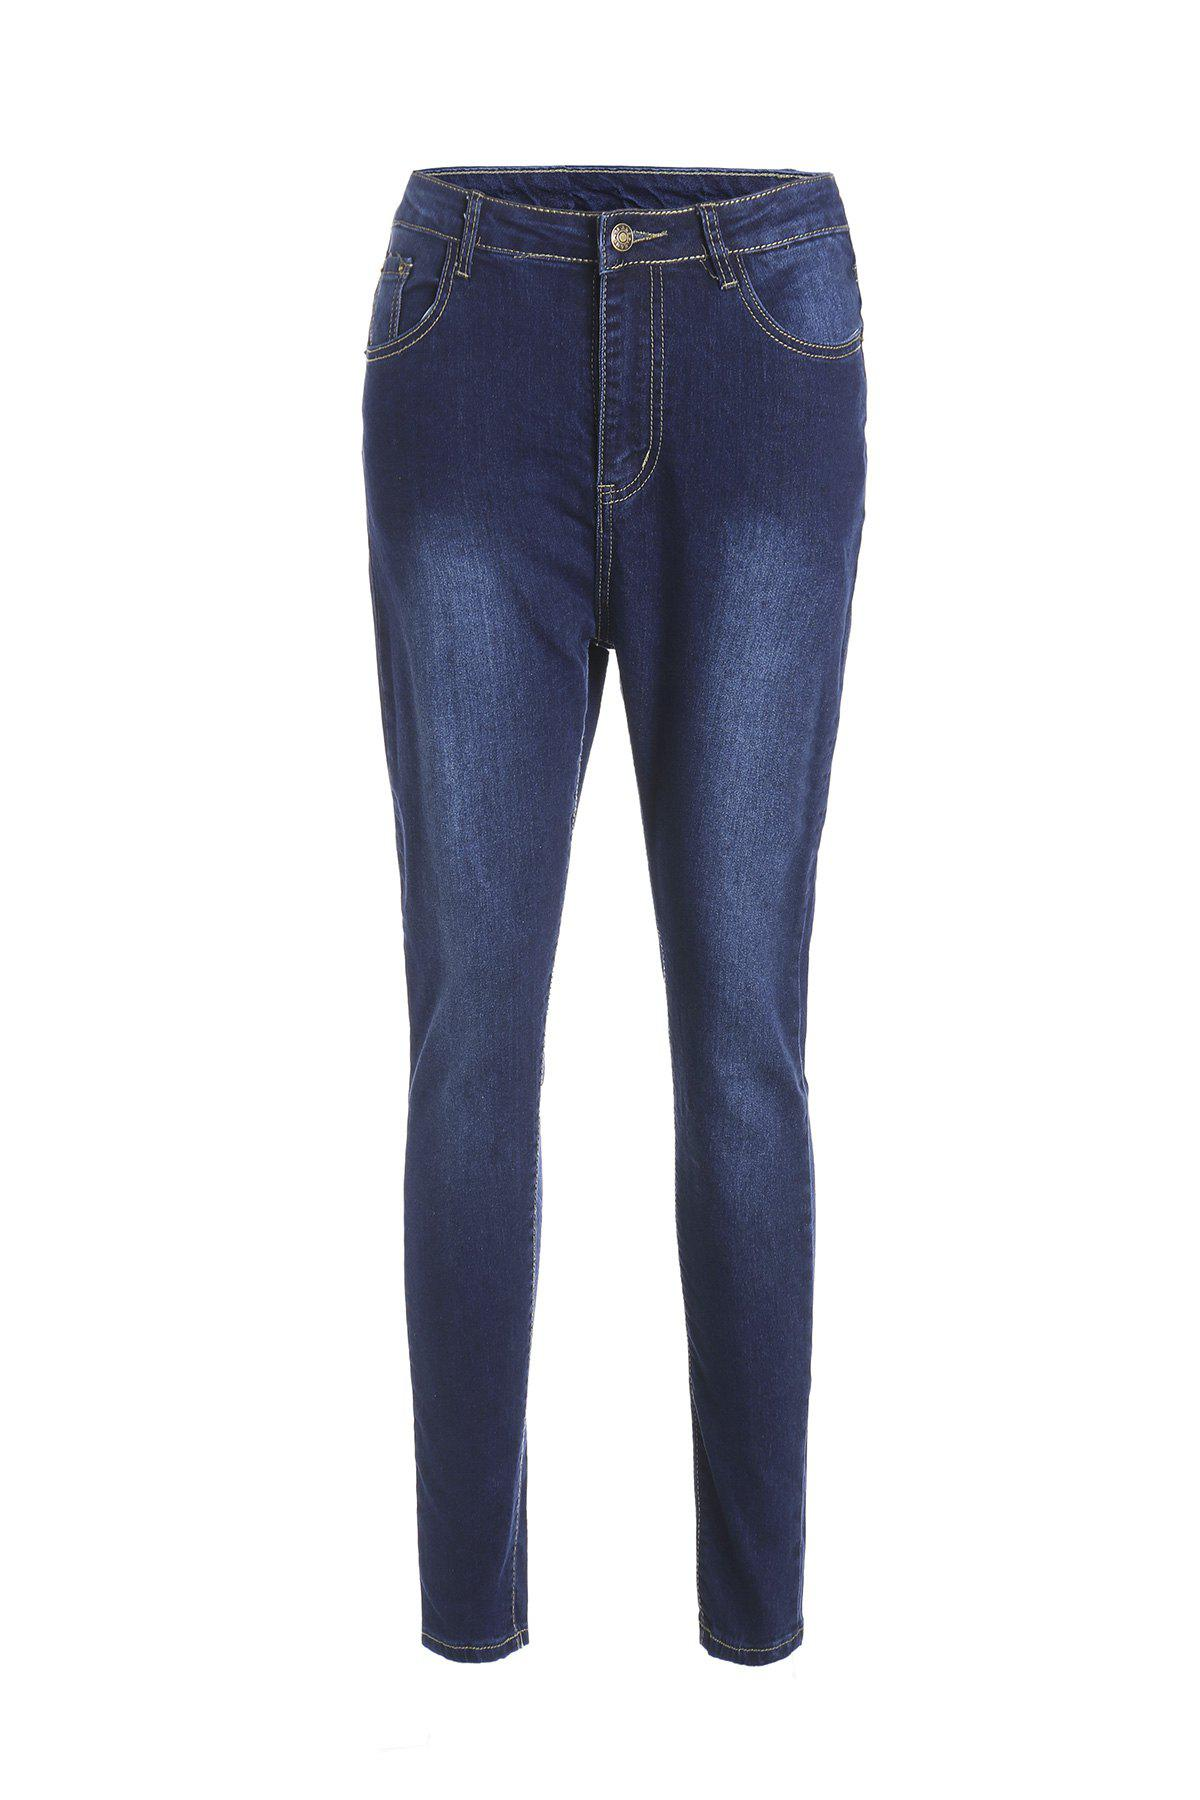 Stylish Pocket Design Solid Color High-Waisted Women's Jeans - DEEP BLUE XL